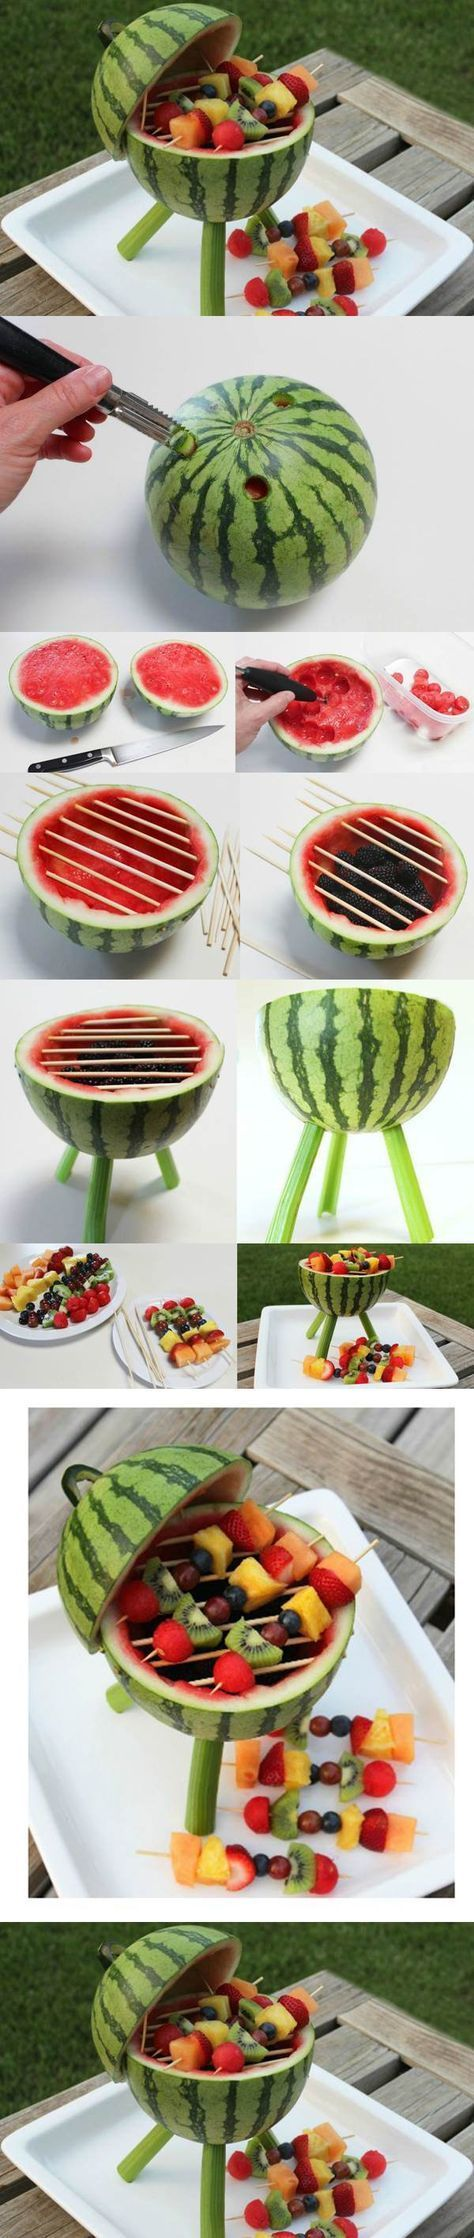 DIY – Watermelon Barbecue Grill   Woman's heaven. This is a frickin great idea! ...frickin wow lol and I teach kindergarten smh